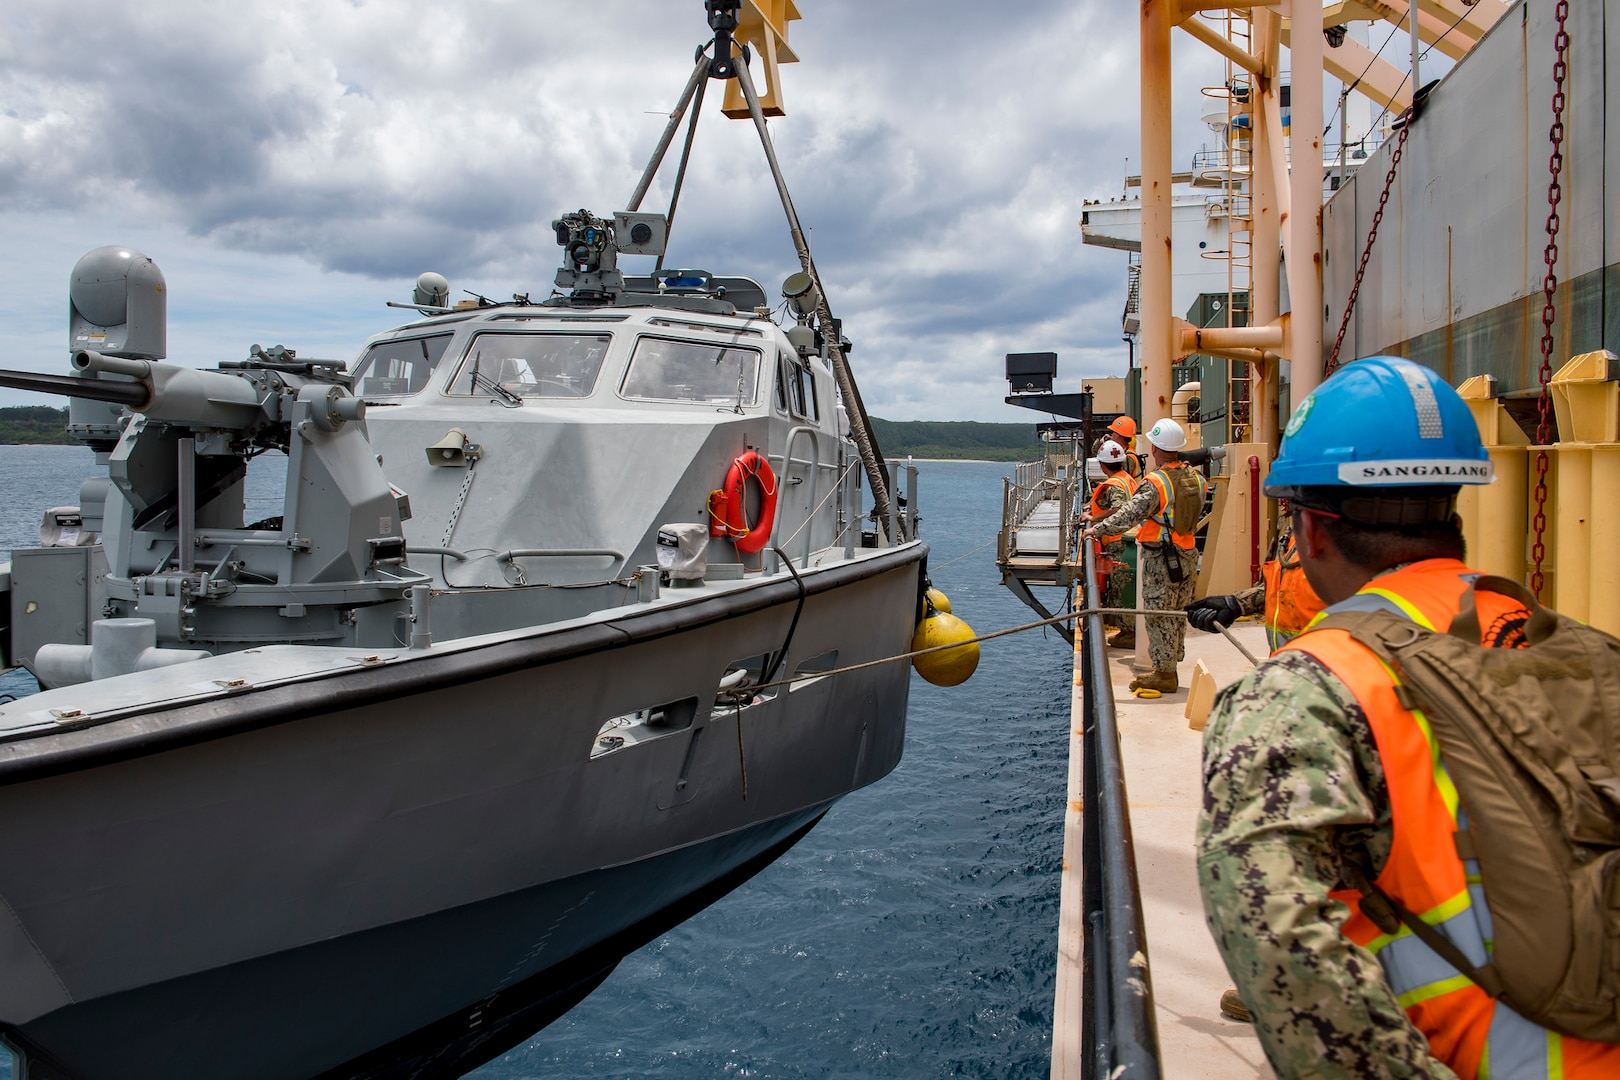 SANTA RITA, Guam (April 4, 2019) Sailors assigned to Navy Cargo Handling Battalion (NCHB) 1, Det. Guam, lift a Mark VI patrol boat assigned to Coastal Riverine Squadron (CRS) 2, Det. Guam, during a first-time proof of concept lift operation aboard the Military Sealift Command maritime prepositioning force ship USNS 2nd Lt. John P. Bobo (T-AK 3008). NCHB-1, Detachment Guam, assigned to Commander, Task Force 75, is the Navy's only active duty cargo handling battalion. They are a rapidly deployable unit of the Navy Expeditionary Combat Command, capable of loading and discharging ships and aircraft in all-climatic and threat conditions. (U.S. Navy photo by Mass Communication Specialist 2nd Class Jasen Moreno-Garcia/Released)